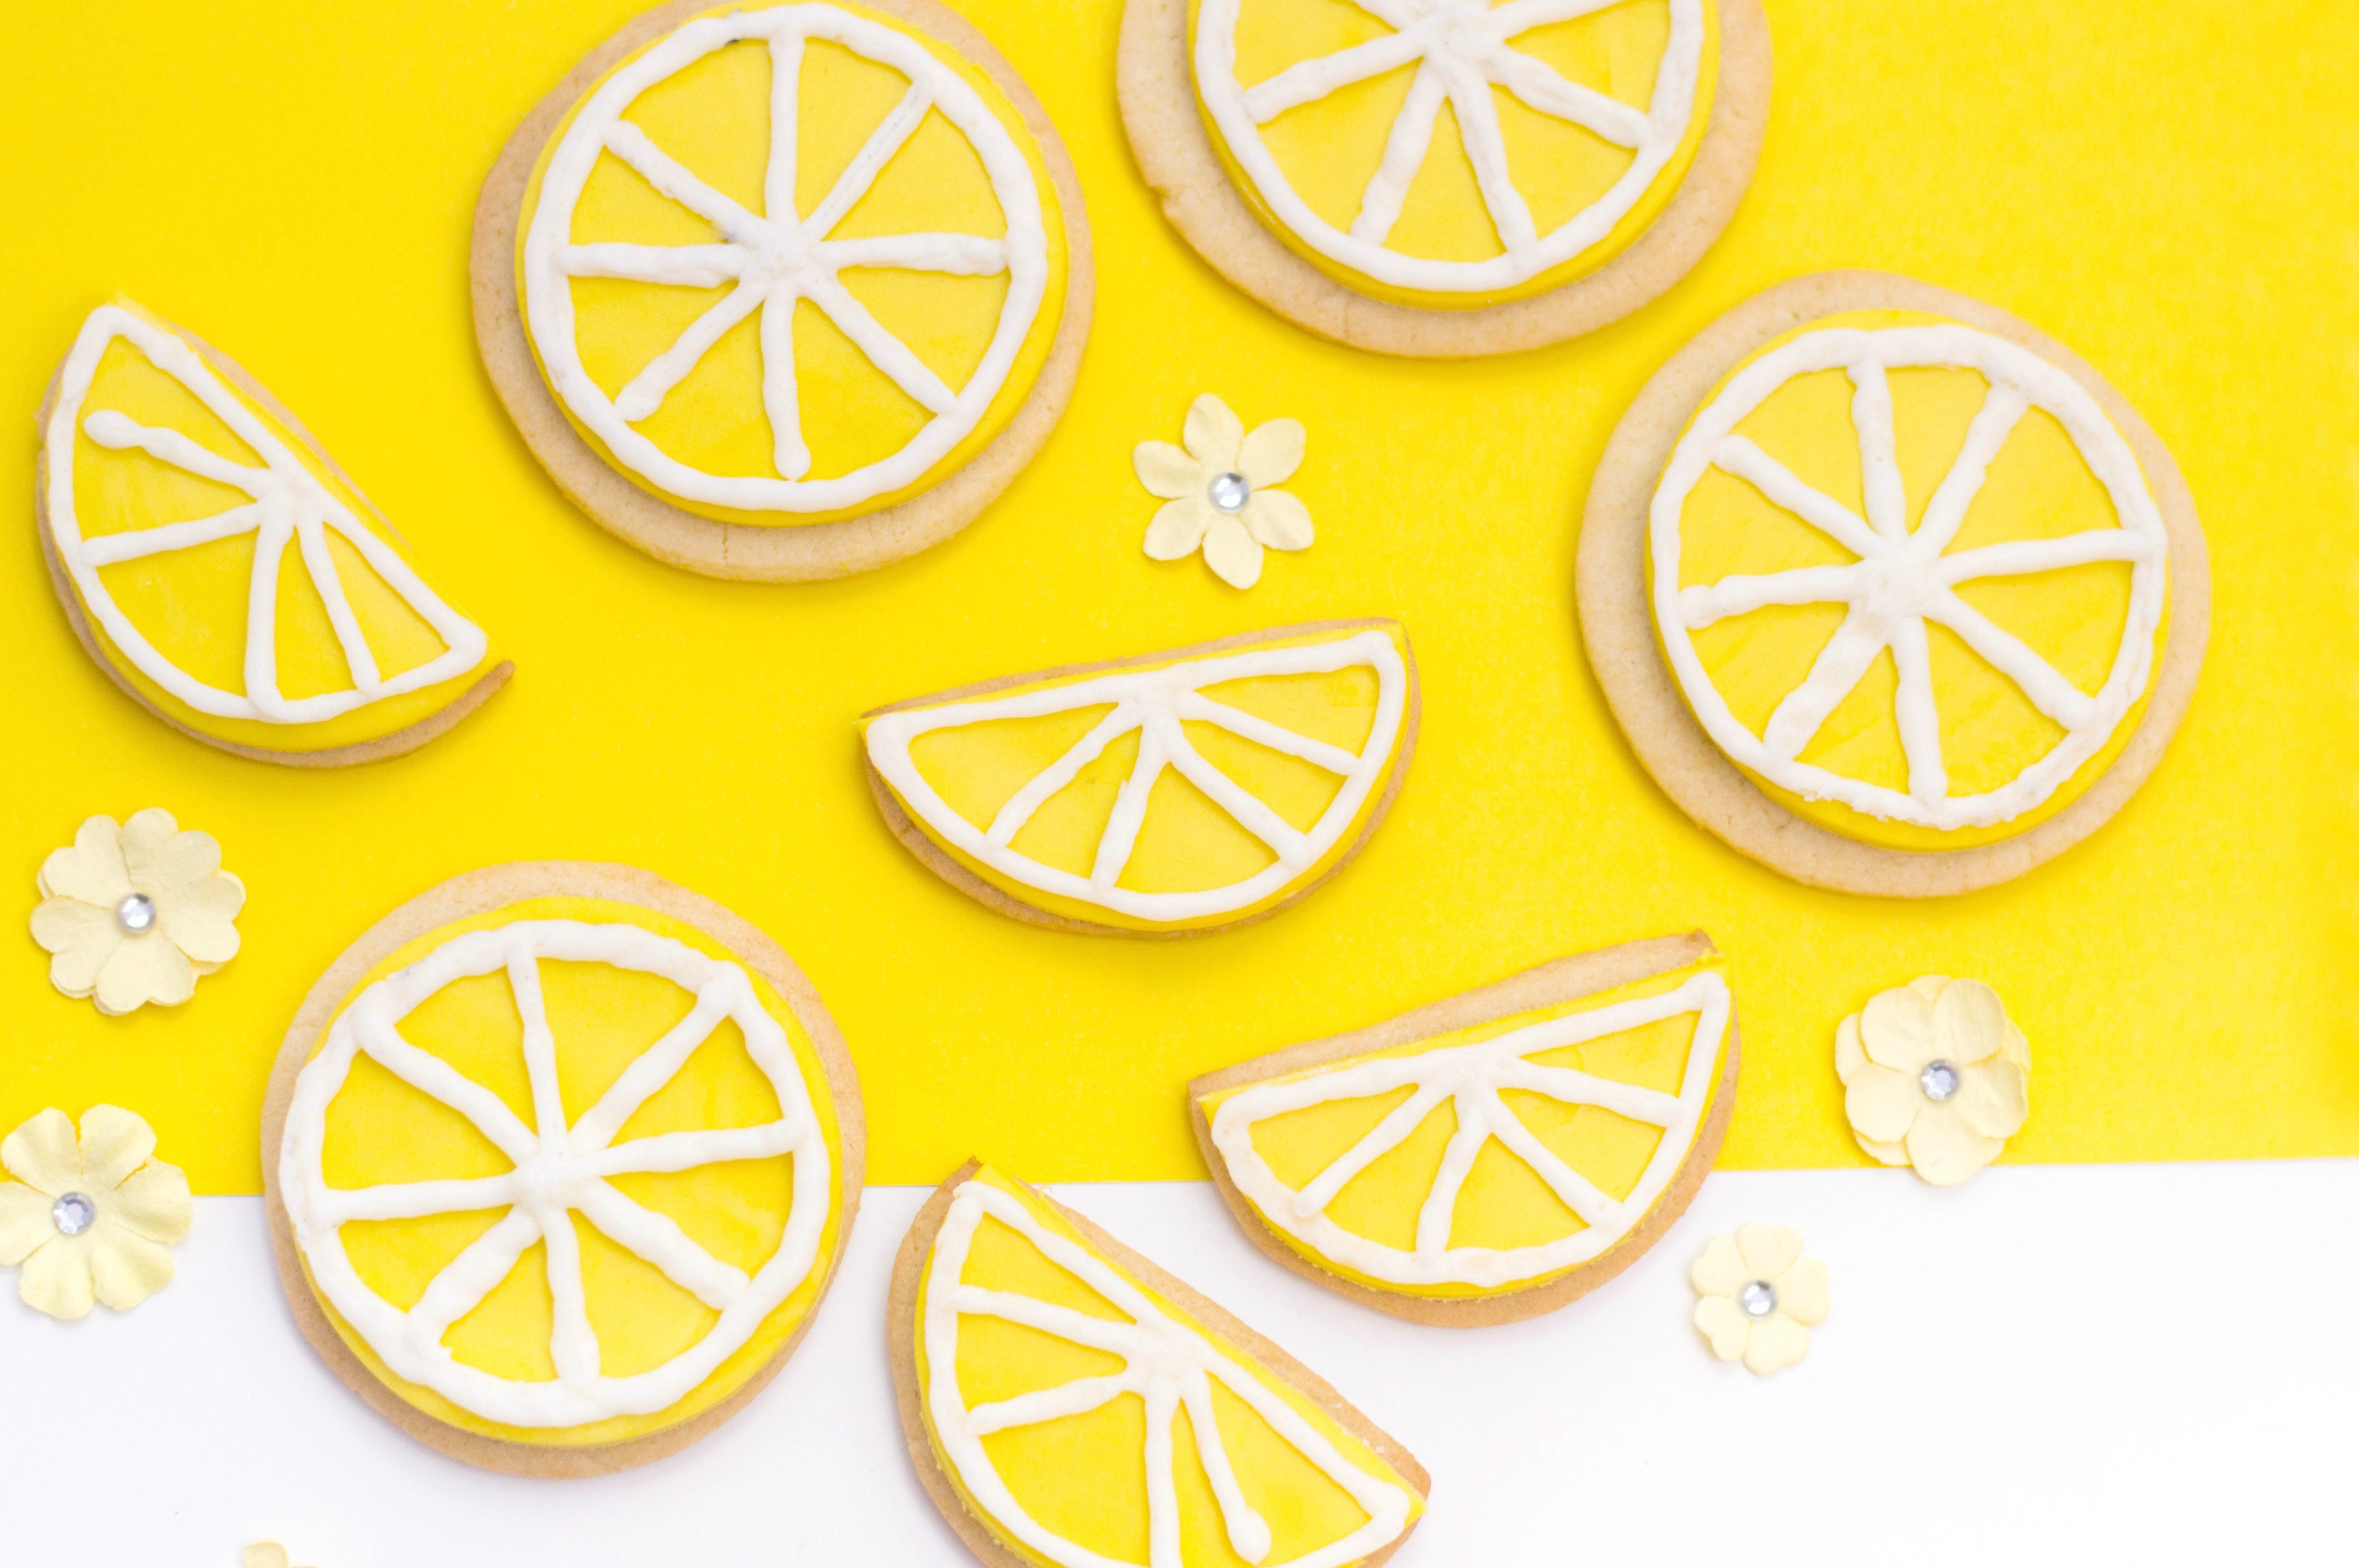 A yellow and white background with little yellow flowers, cookies and half cookie wedges placed on top. Iced and they look like lemon wedges and lemon slices ready to eat!